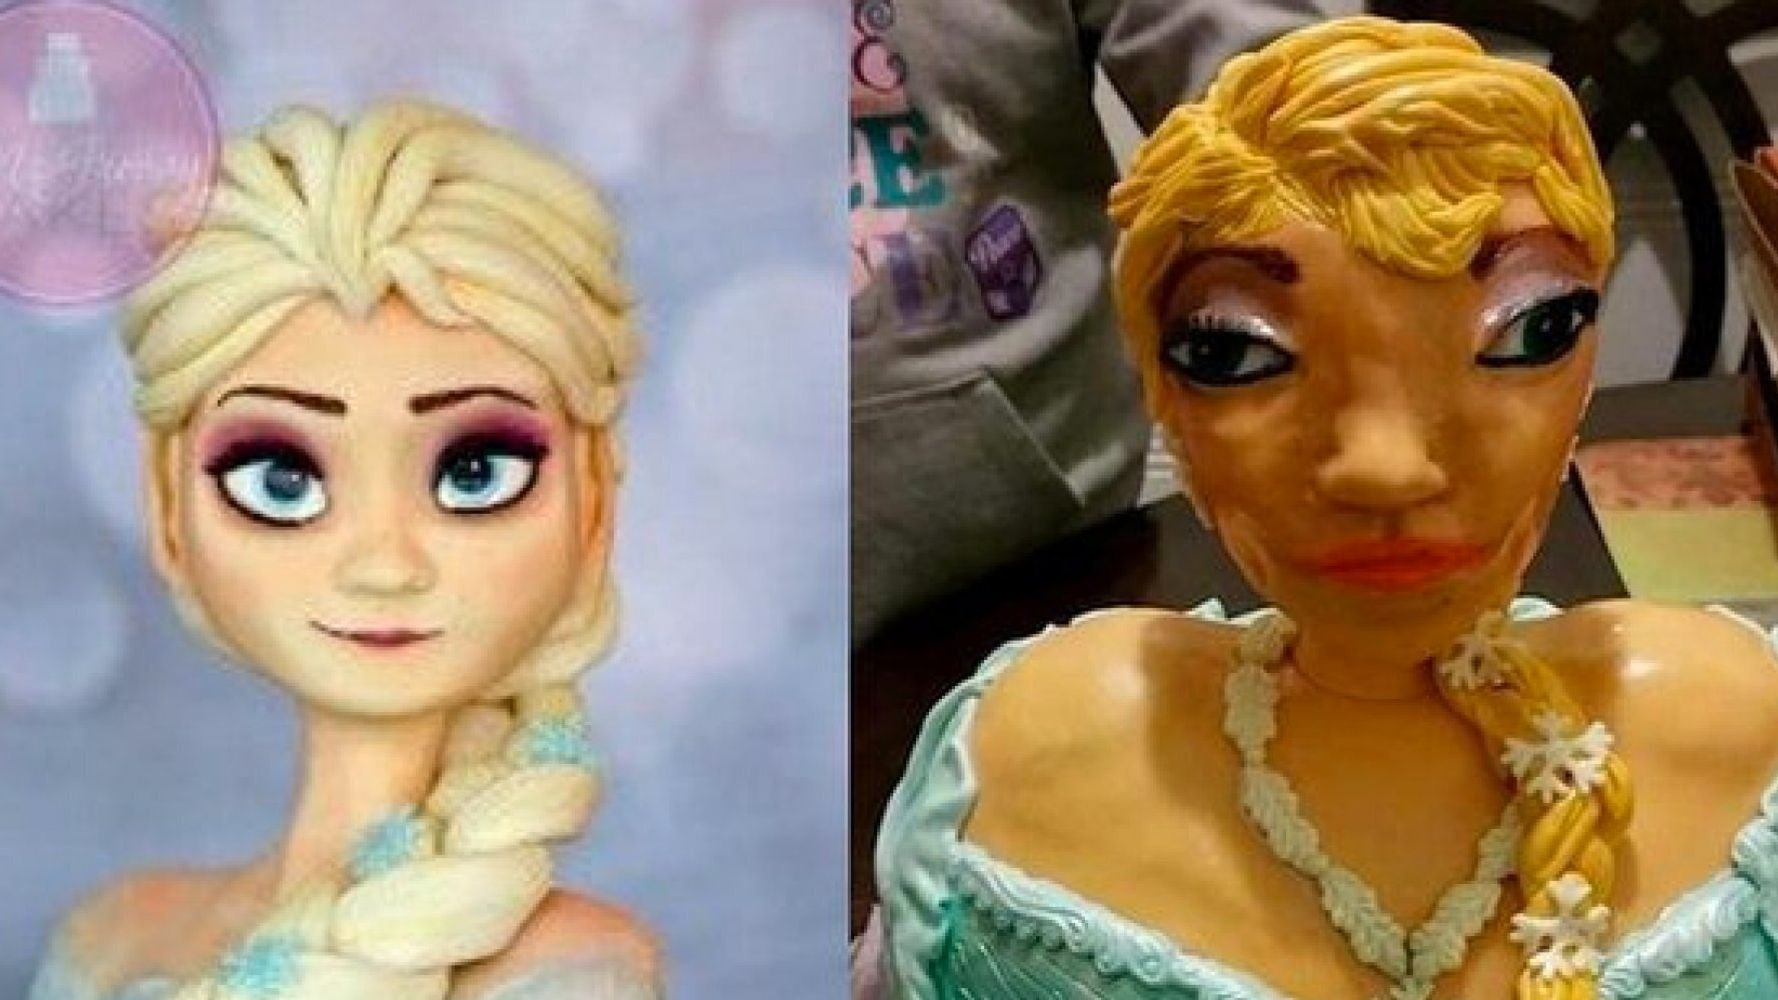 Marvelous The Frozen Elsa Birthday Cake That Went Terribly Wrong Huffpost Funny Birthday Cards Online Unhofree Goldxyz